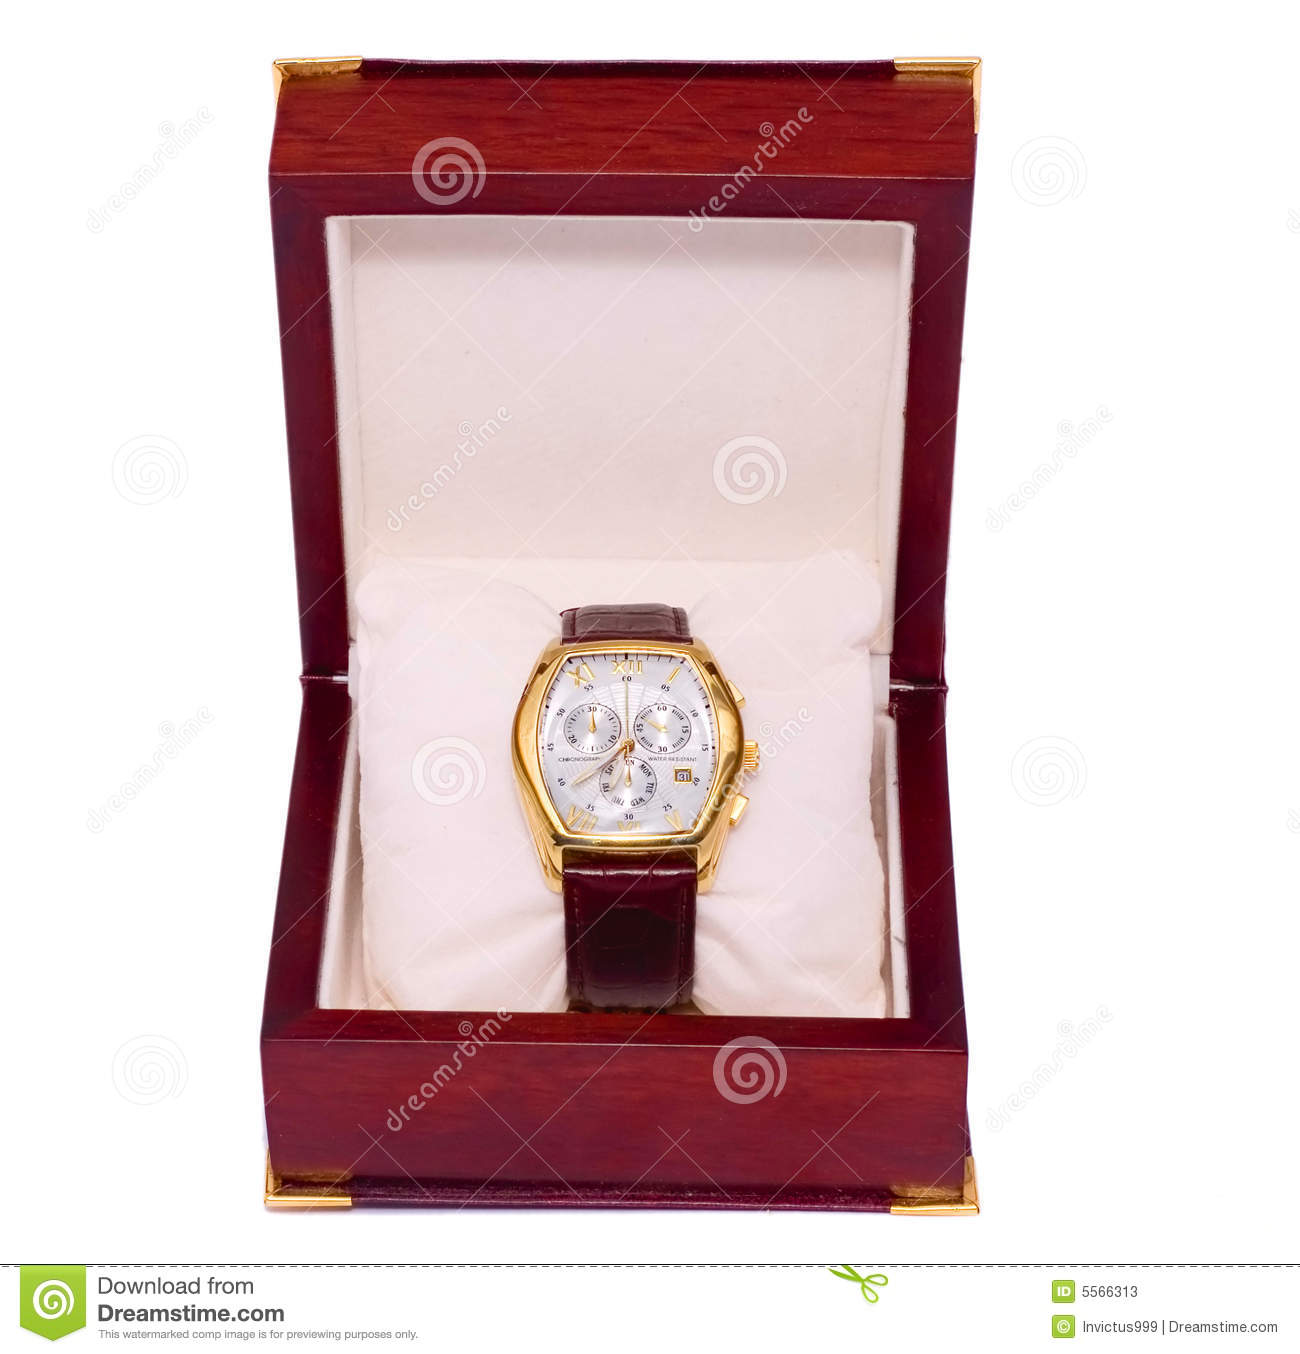 5175c33c4152 Watch Box Birthday Gift Present Stock Image - Image of beautiful ...